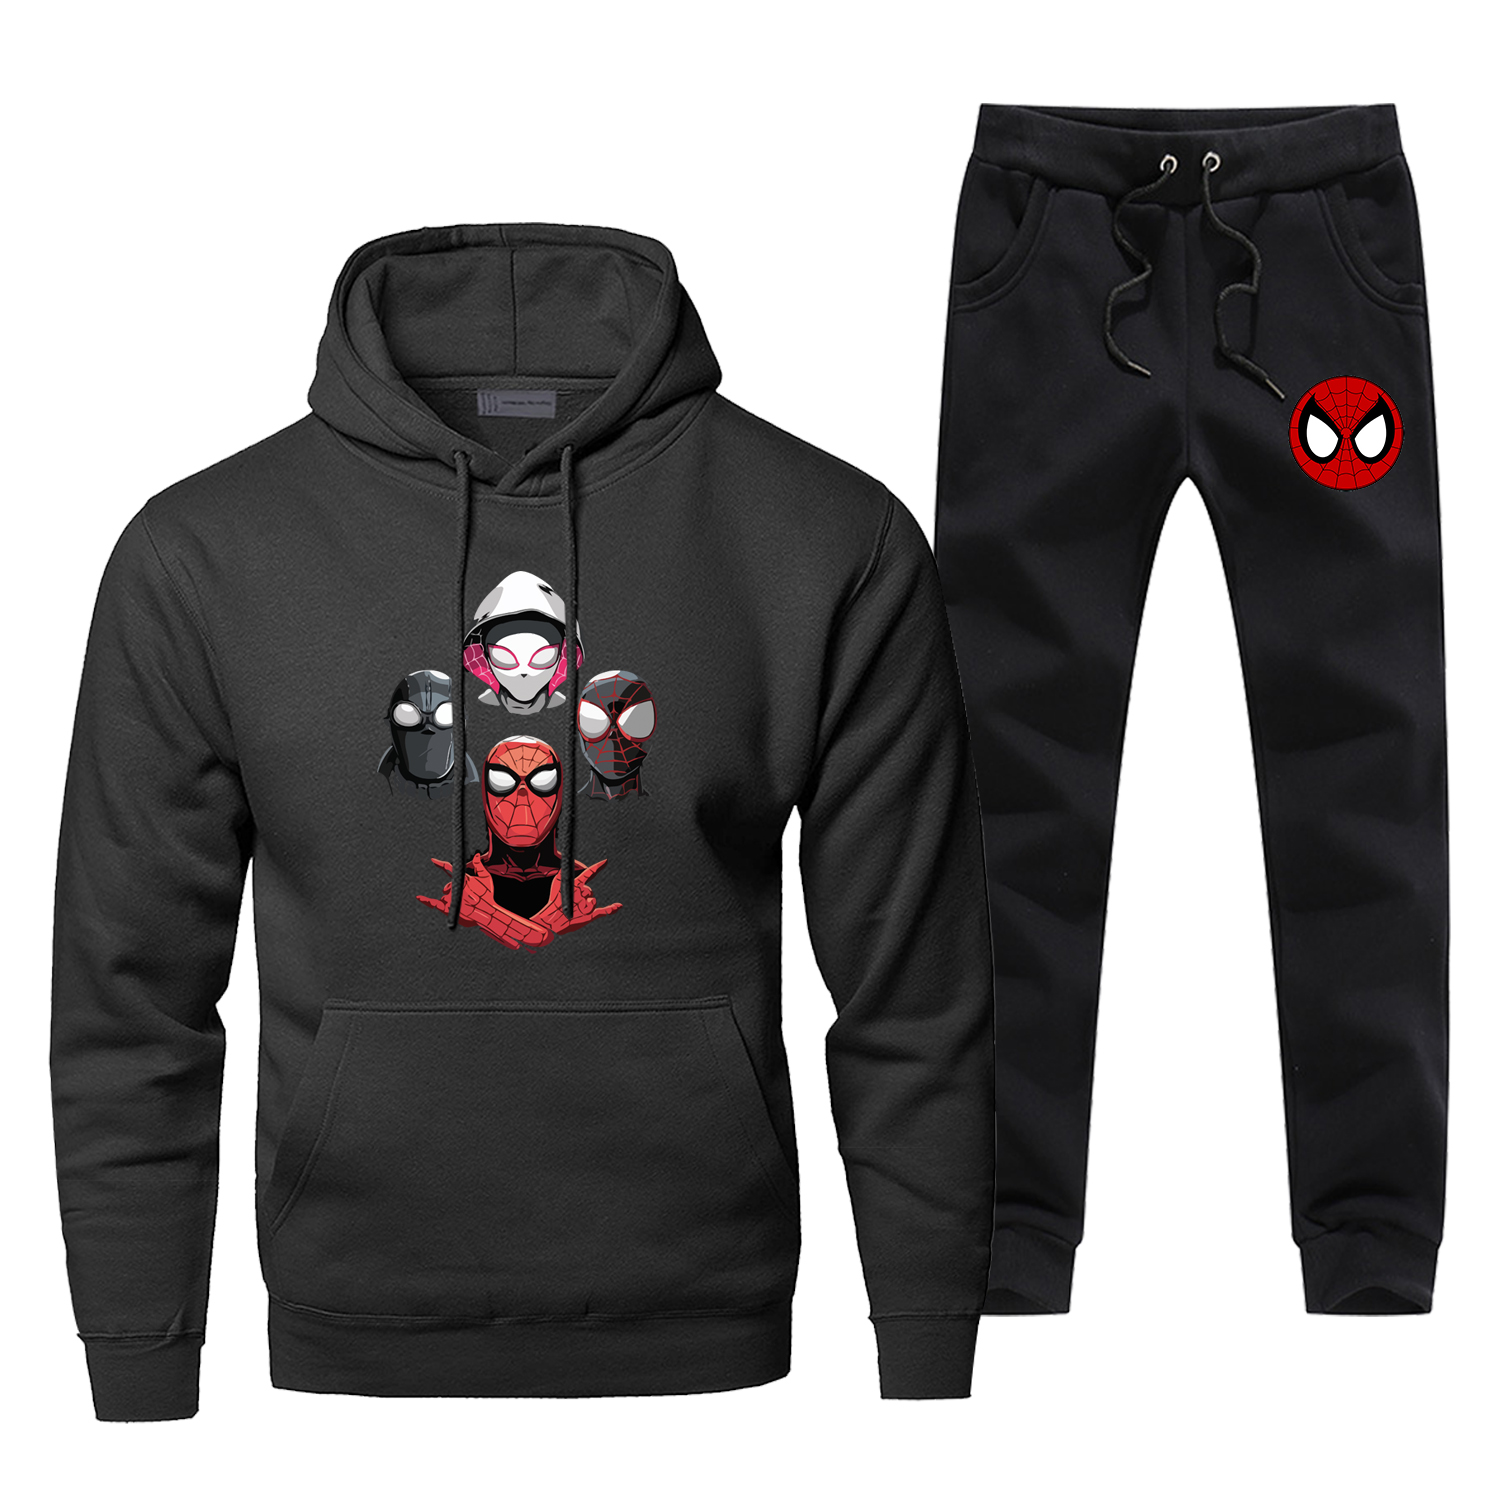 Mens Spiderman Parallel Universe Hoodies Sets Tpc Pant Hoodie Sweatshirt Sweatpants Streetwear Sportswear Super Hero Sweatshirts